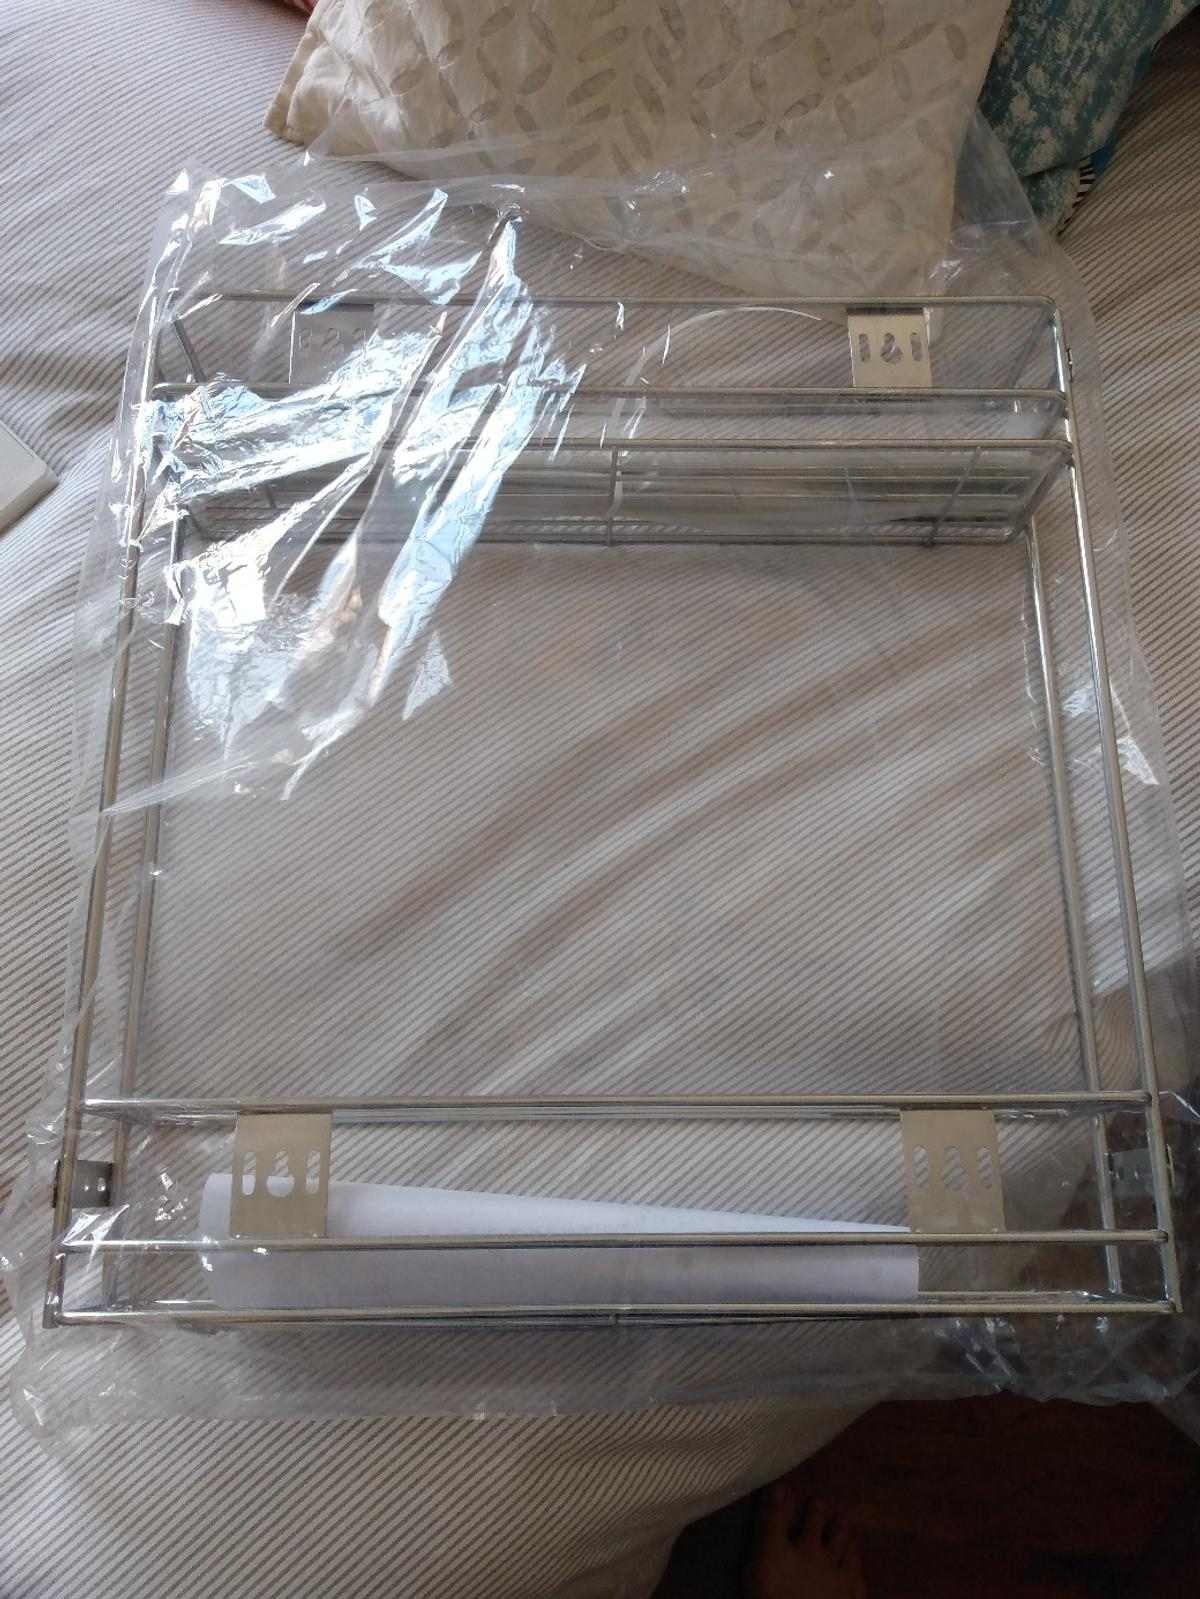 Brand new still in box as I have two but now only need one set for my new kitchen.  Ball bearing runners for smooth & quiet operation  Manufactured from steel with 2 x wire trays  Ideal storage for bottles  Maximum weight: 10kg  Minimum cabinet depth: 470mm  Minimum cabinet width: 115mm  Pick up only and cash only please.